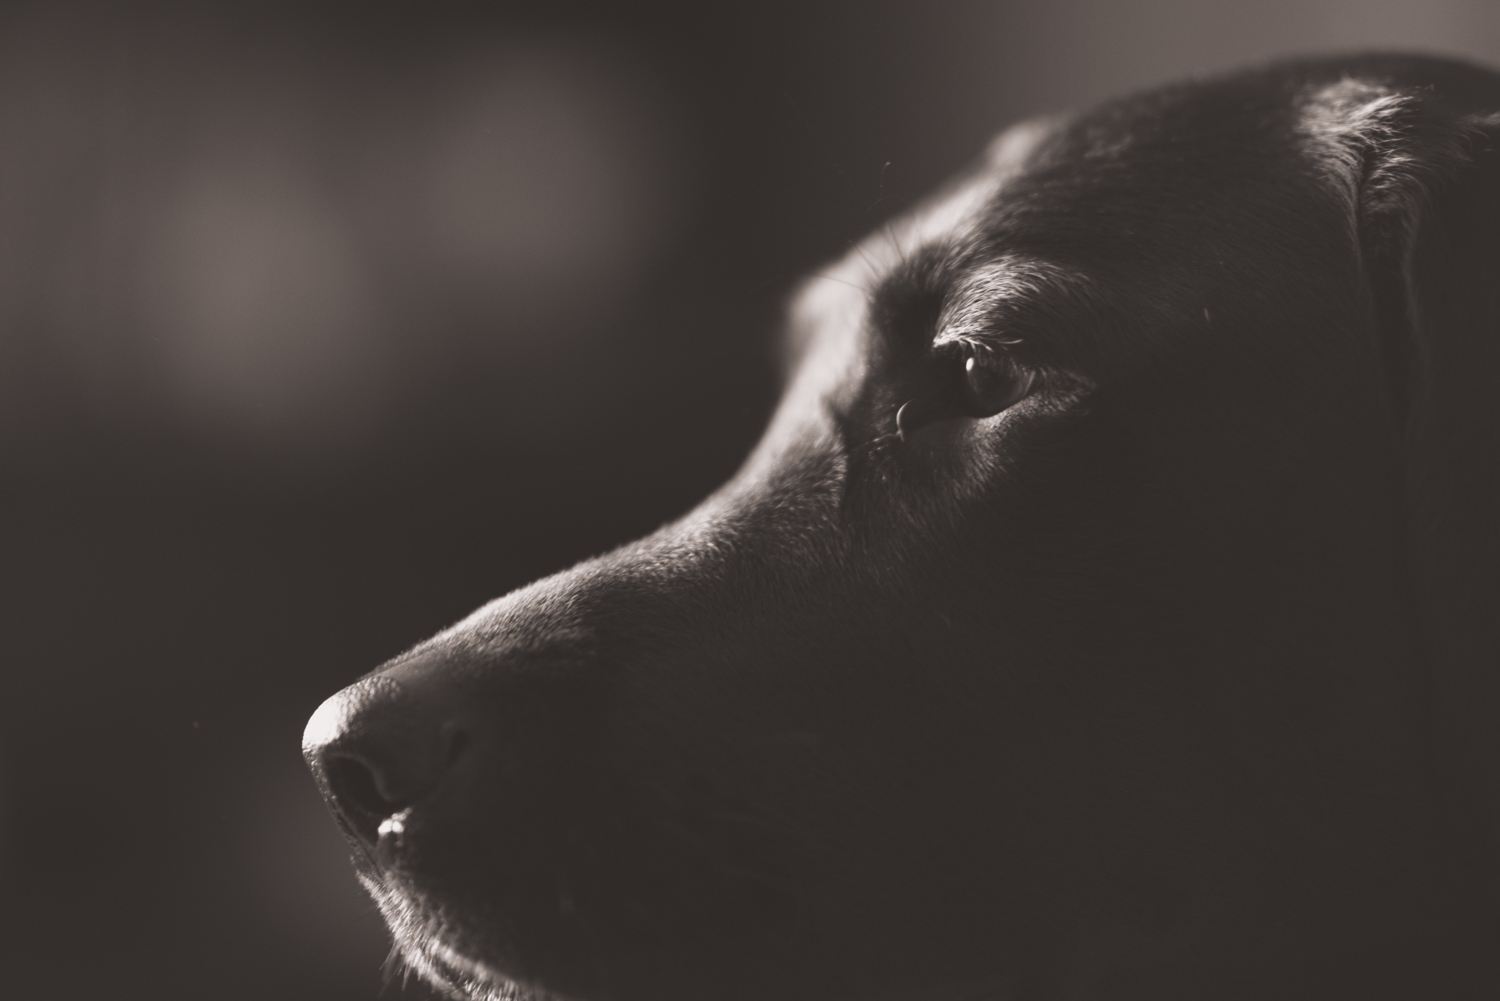 A low light photo of a dog taken during an engagement photo shoot